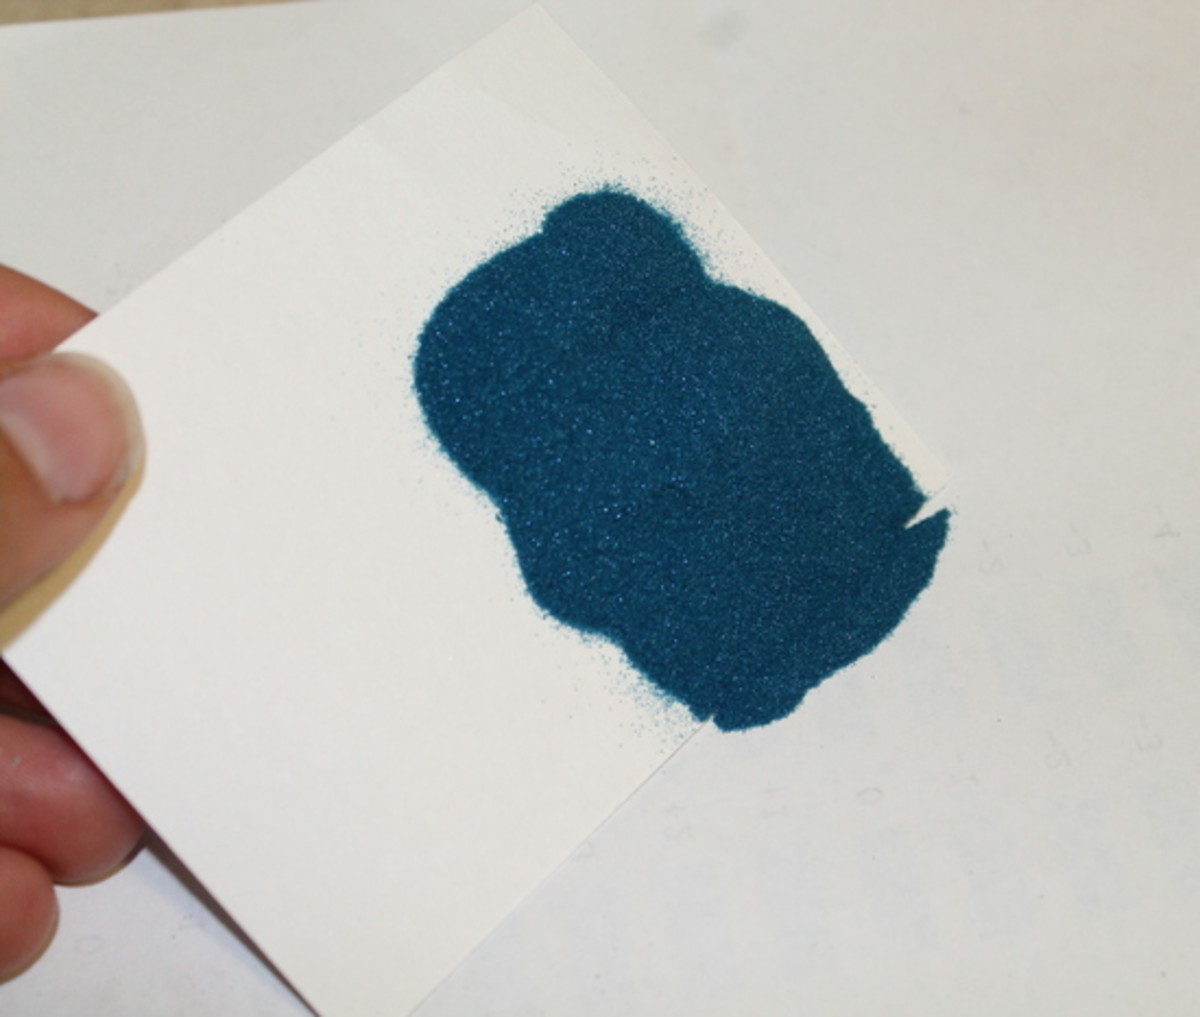 Pour the loose powder off onto a spare sheet of paper.